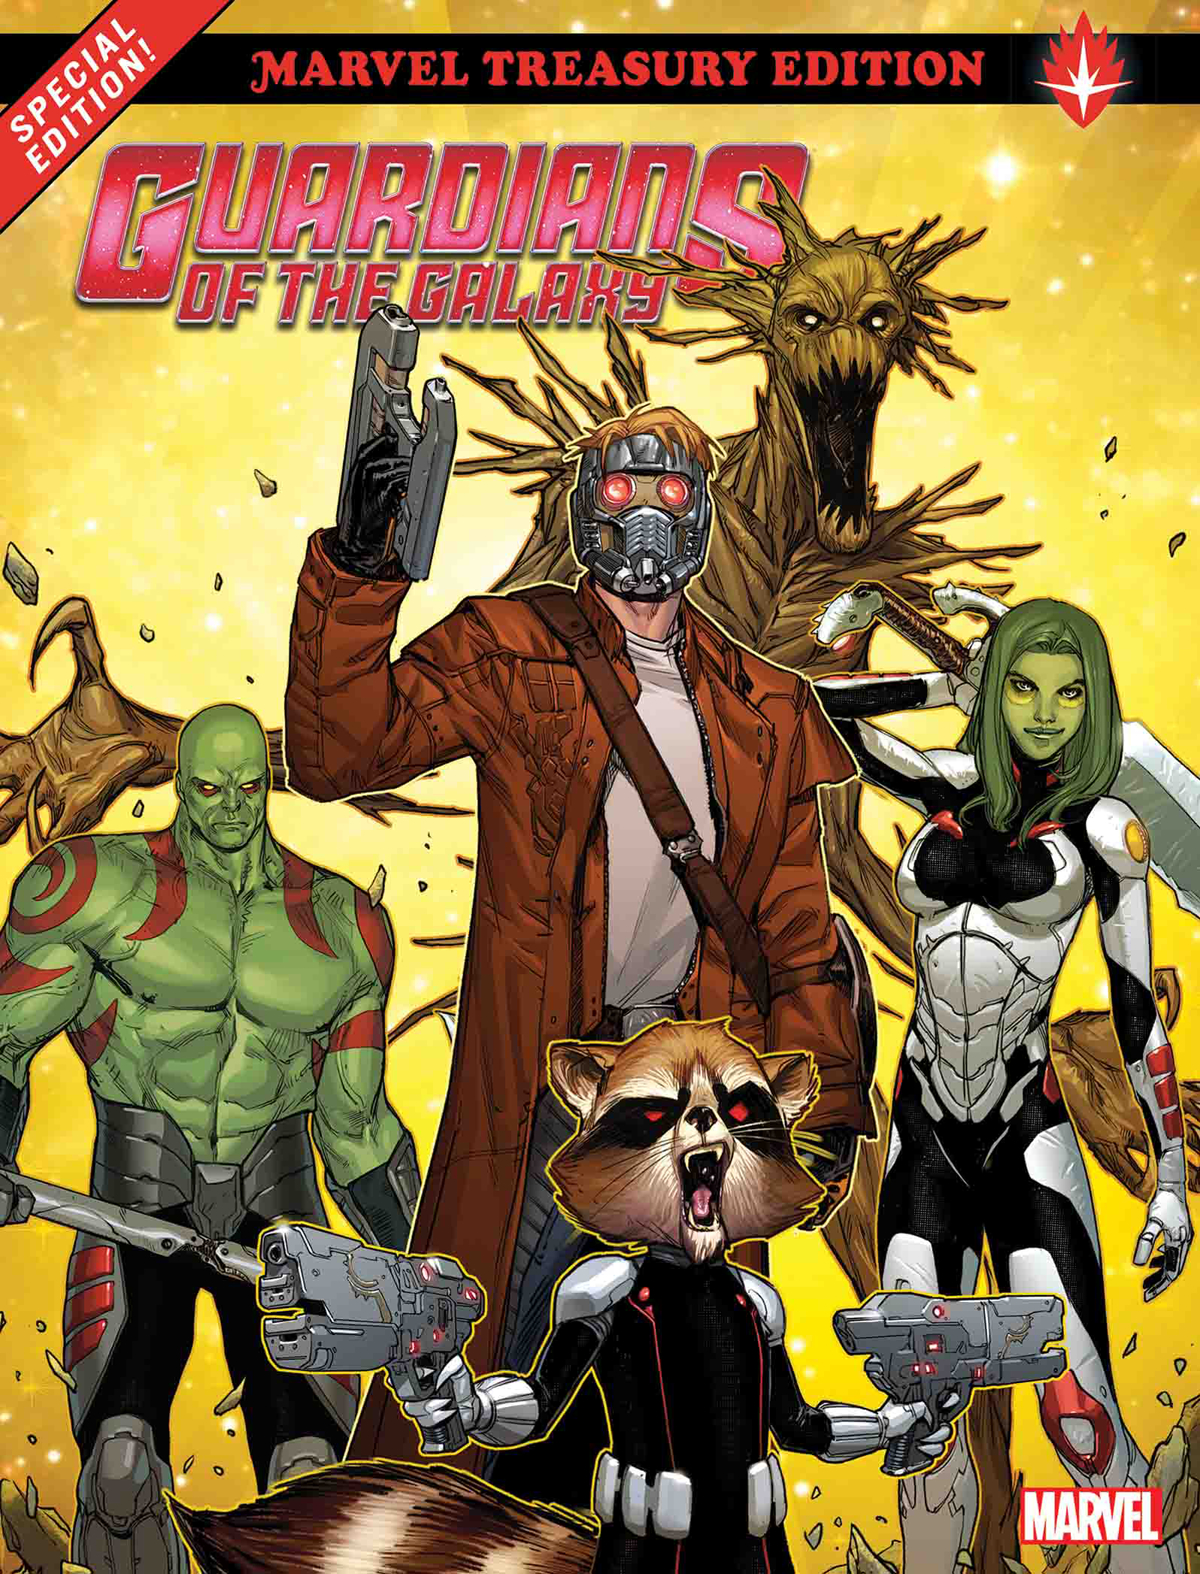 GUARDIANS OF GALAXY ALL NEW MARVEL TREASURY ED TP